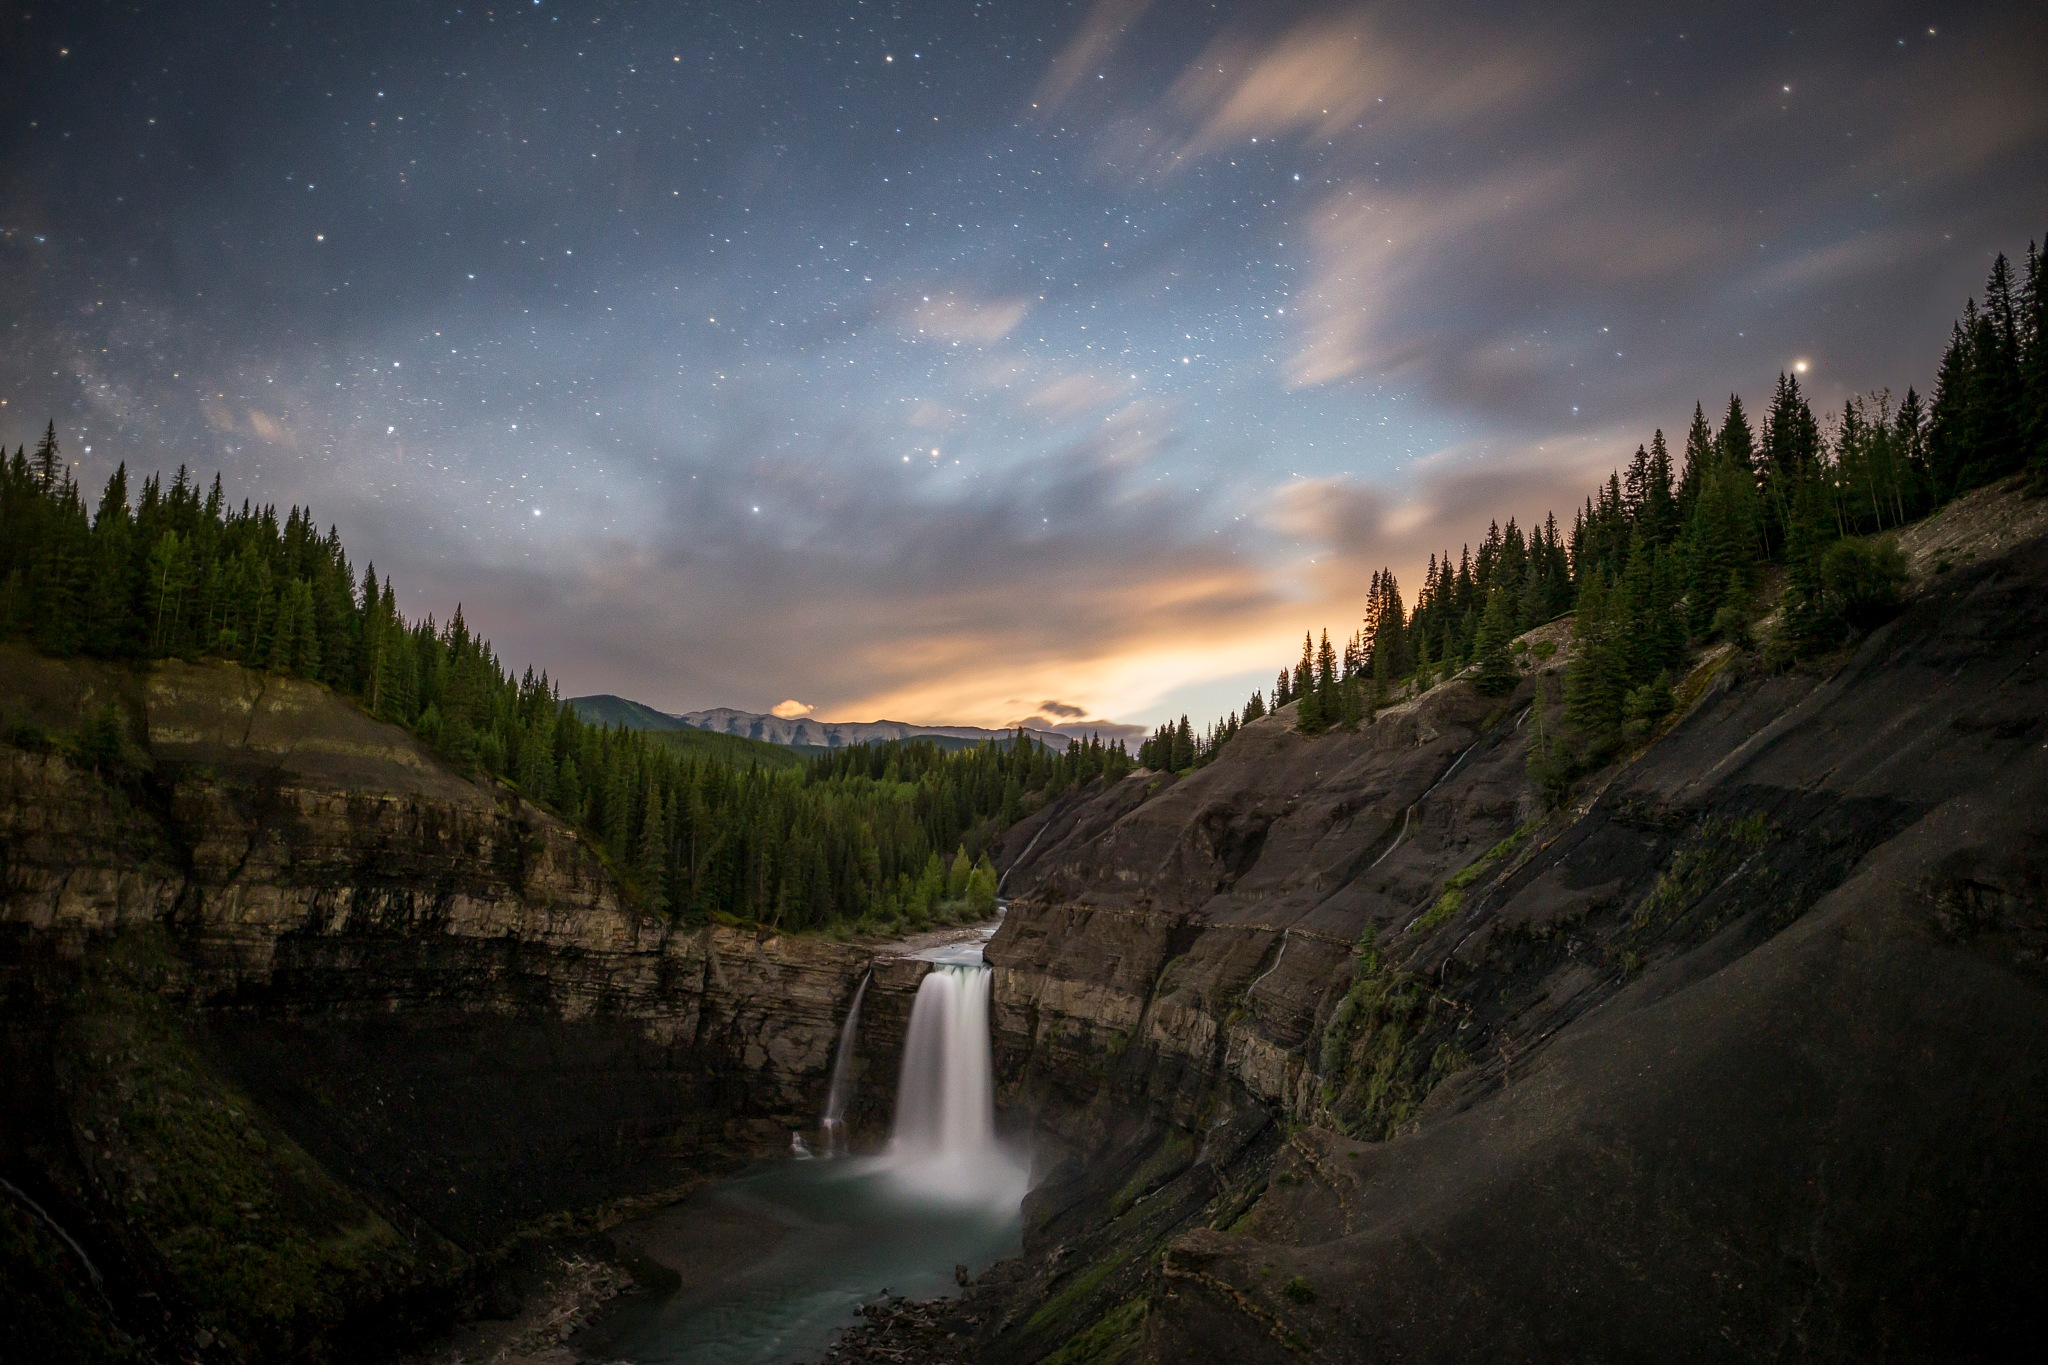 Ram Falls by Star Light by Logan Evans